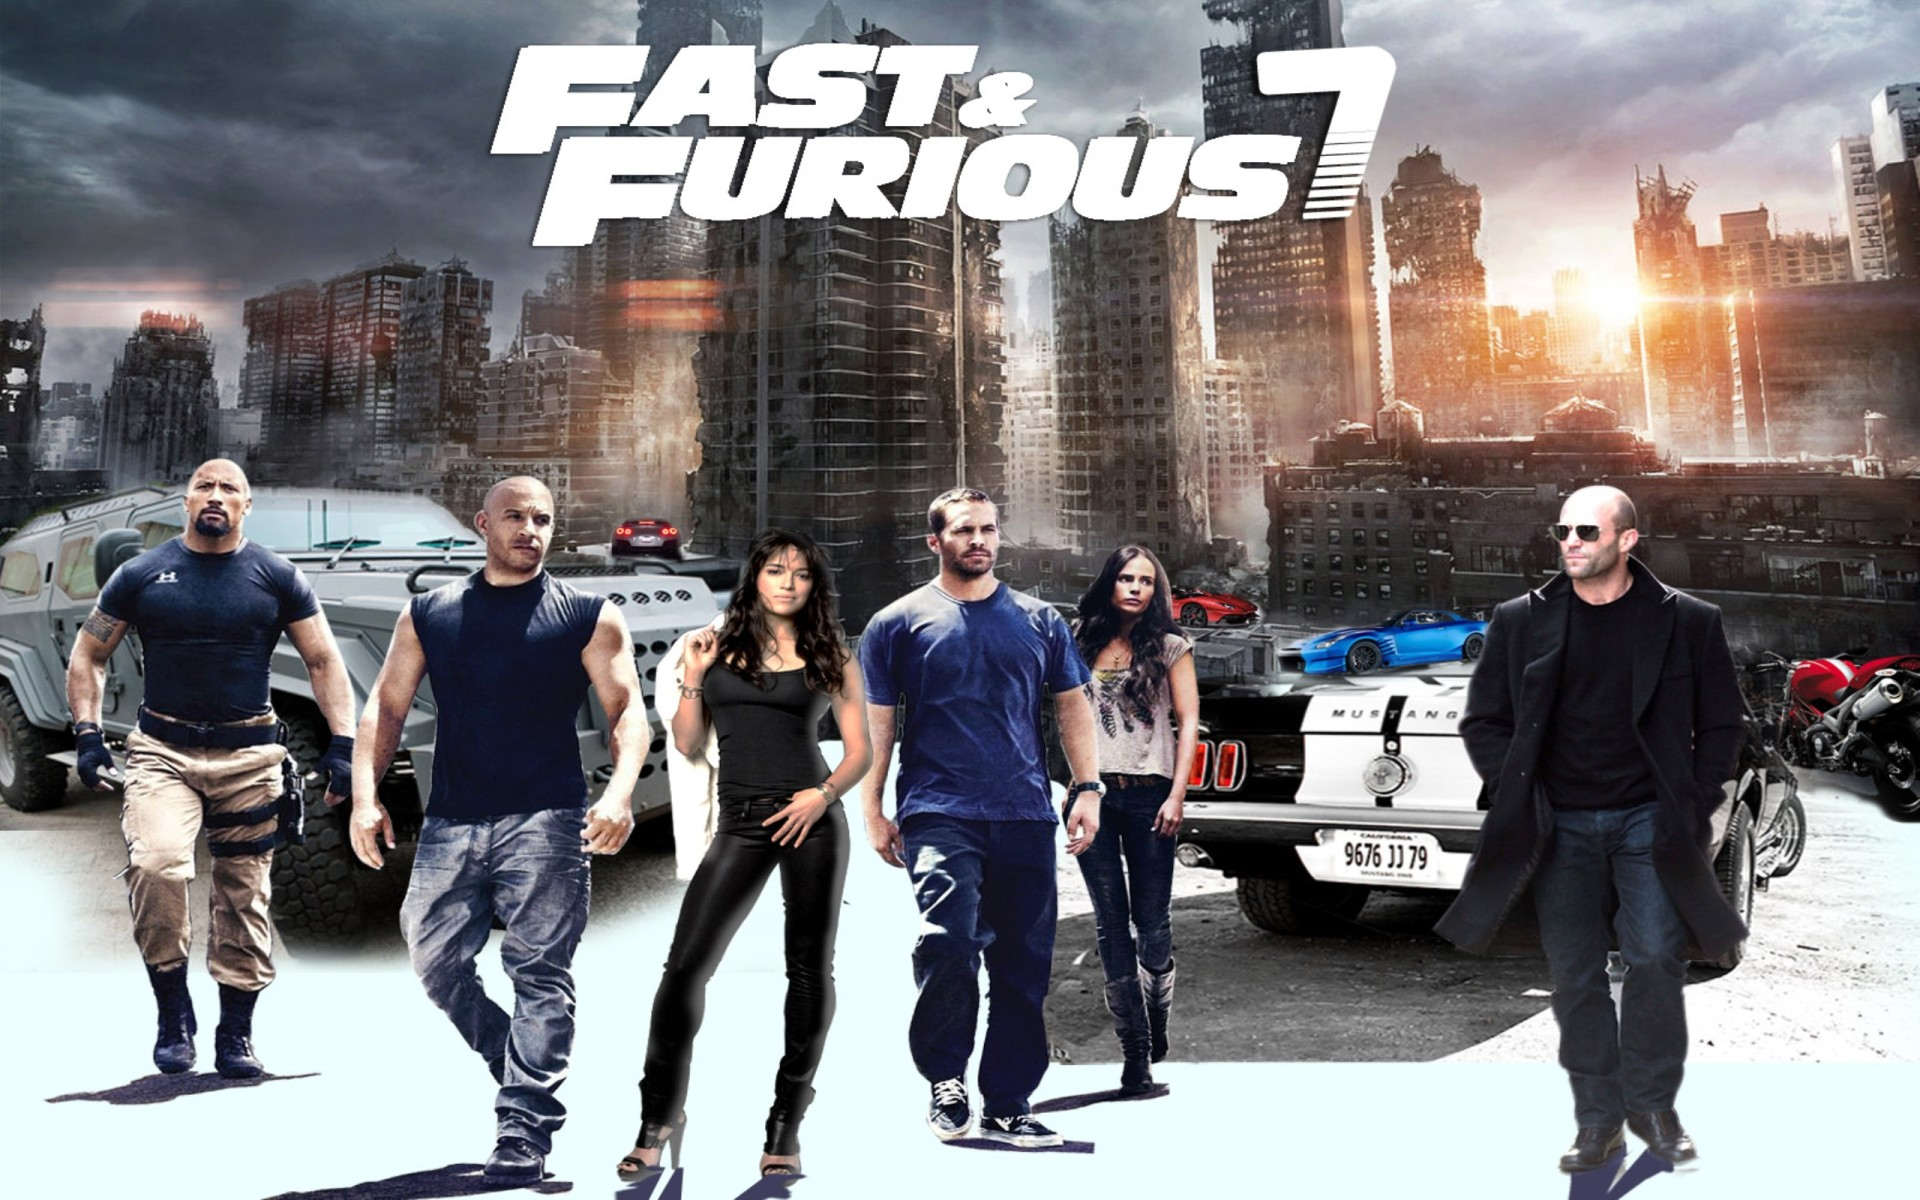 peli fast and furious 7